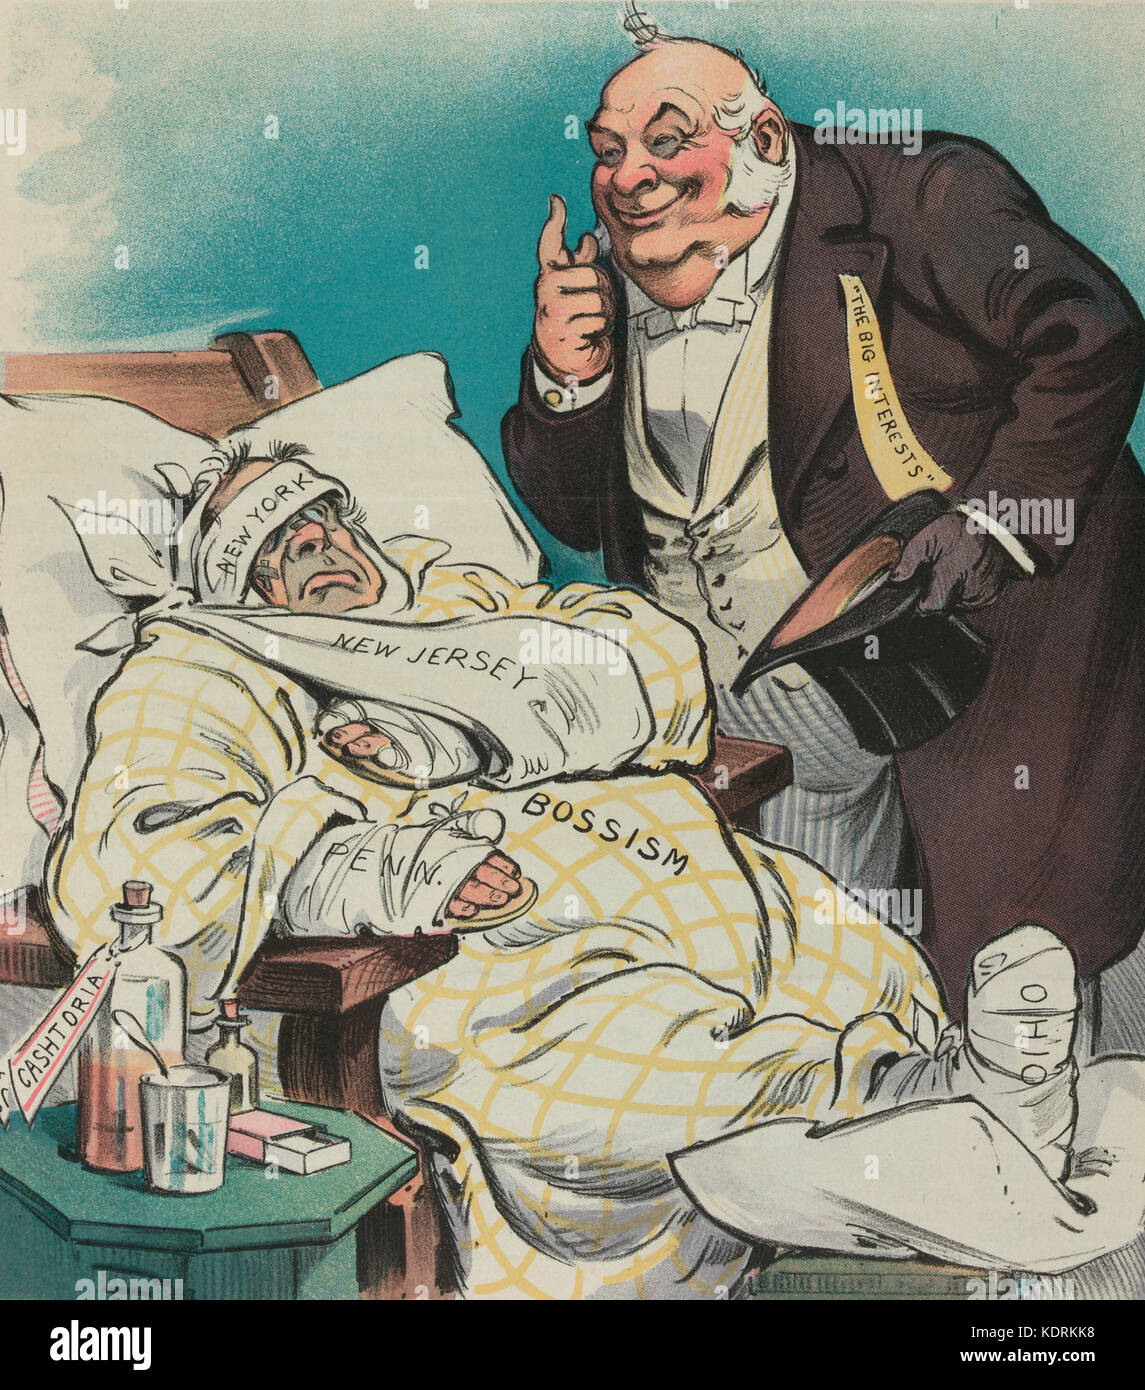 Till we forget -  Illustration shows a person labeled 'Bossism' sitting in a chair, with many bandages labeled - Stock Image